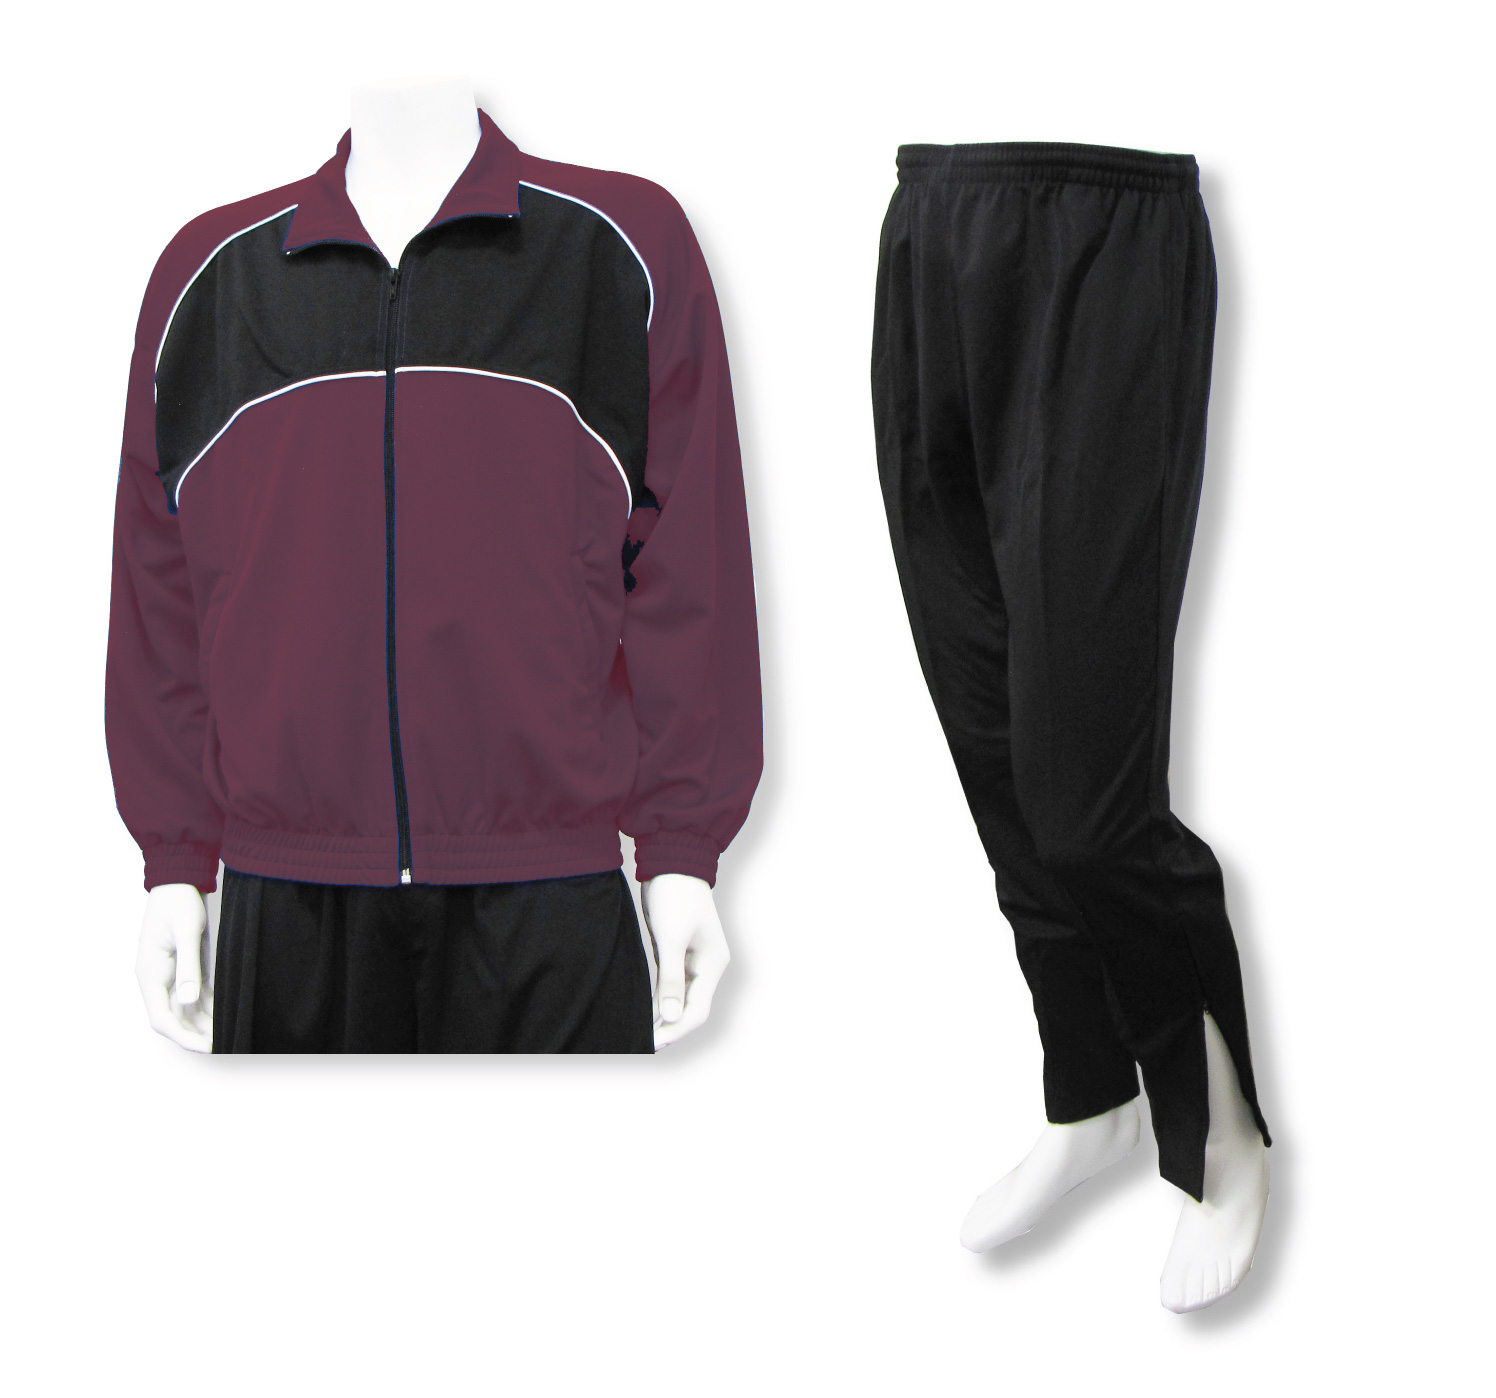 Crossfire soccer jacket and pant set in maroon by Code Four Athletics